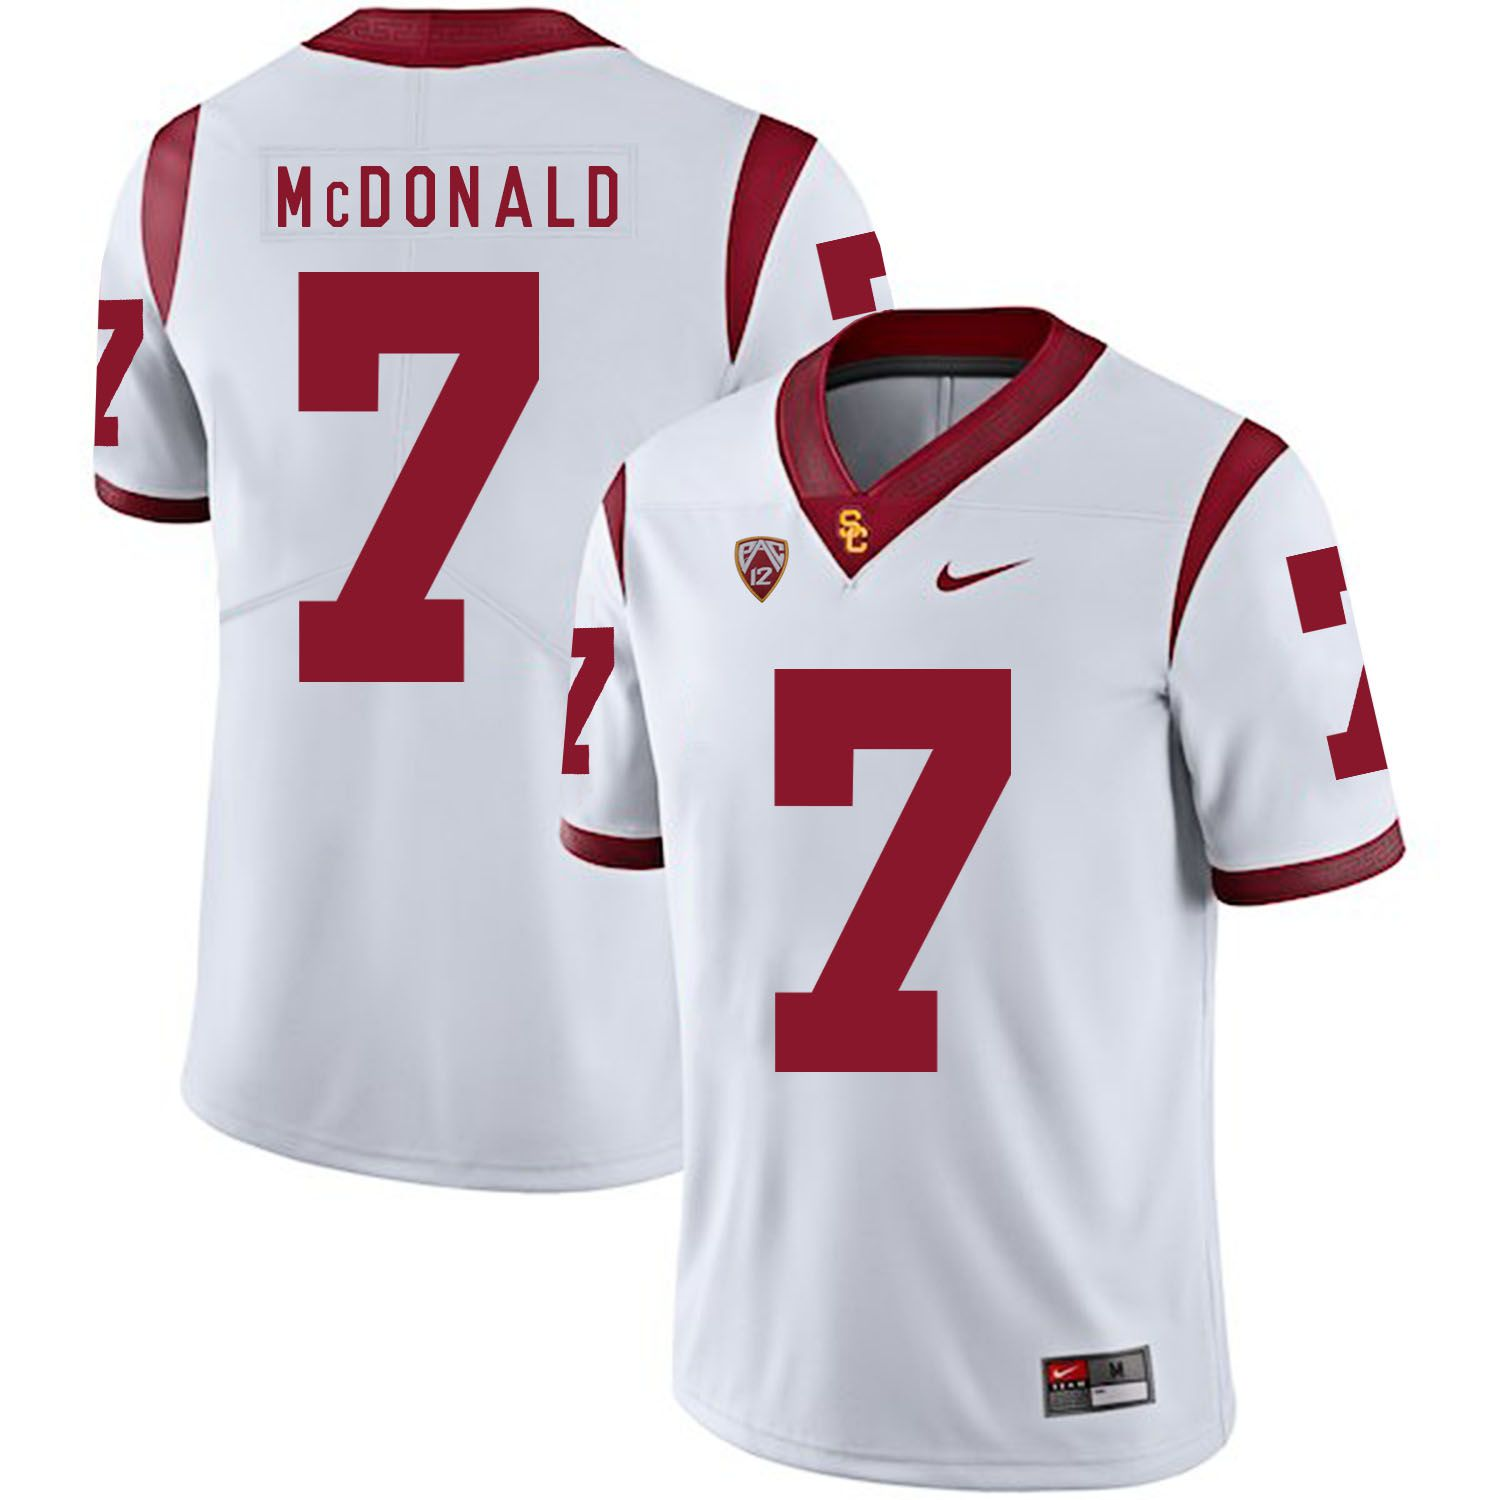 Men USC Trojans 7 Mcdonald White Customized NCAA Jerseys